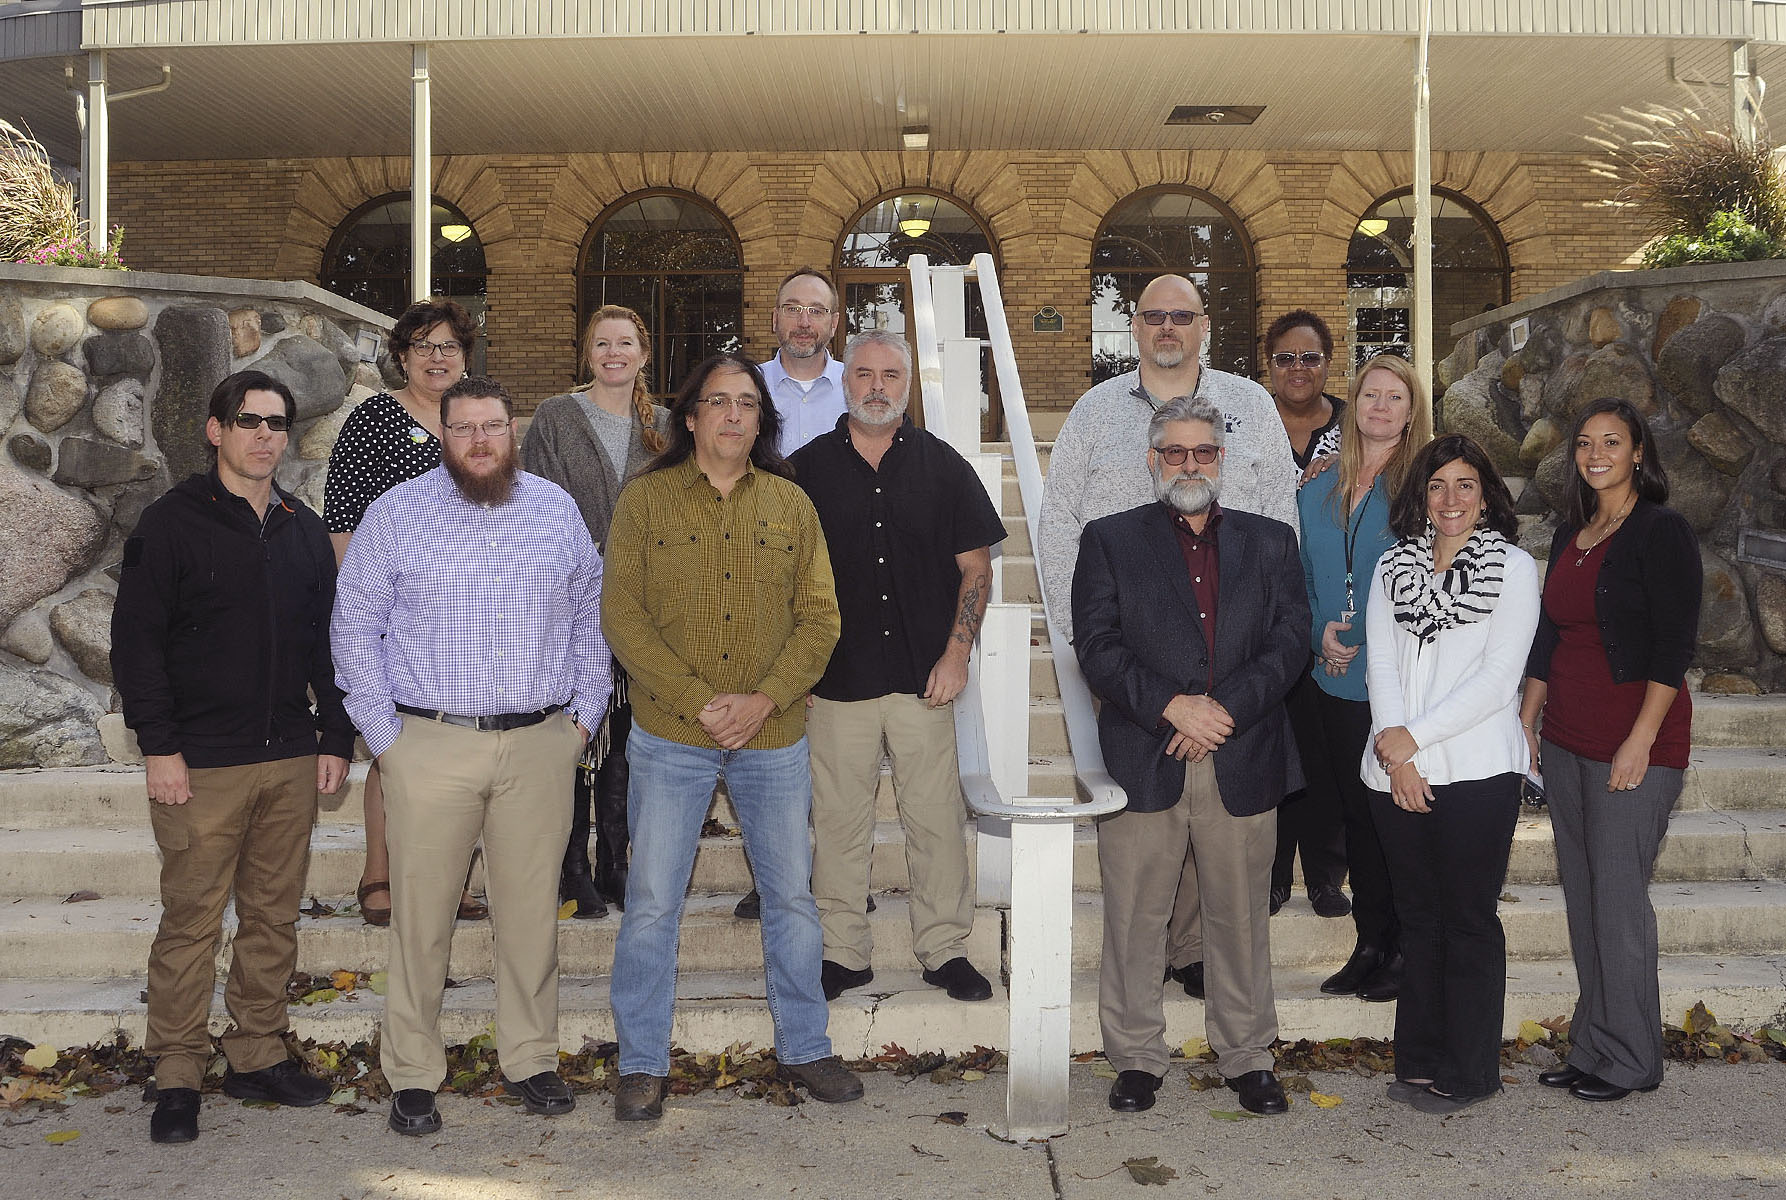 Group photo of the 13 members of the Defense Logistics Agency Disposition Services Culture Action Team.